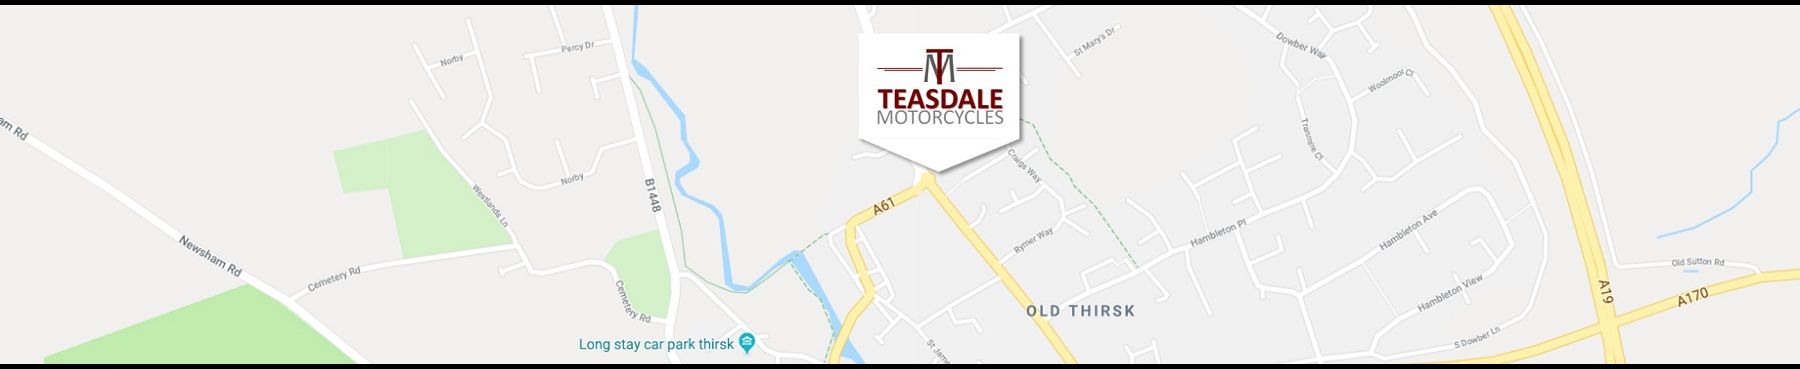 Google Maps Centred on Teasdale Motorcycles